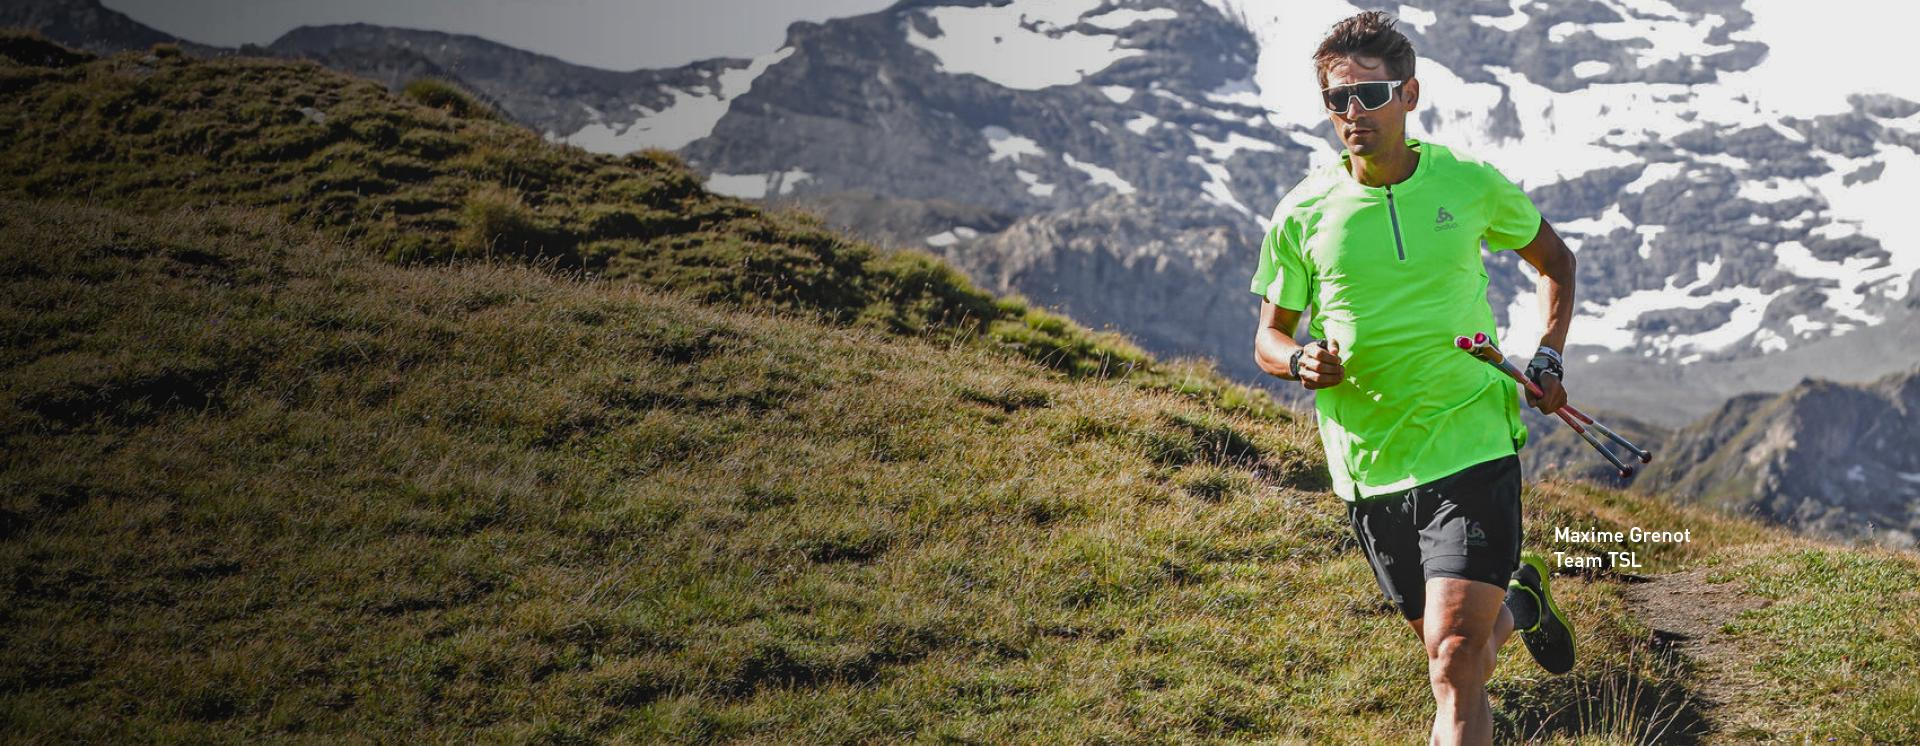 New ODLO trail running collection.